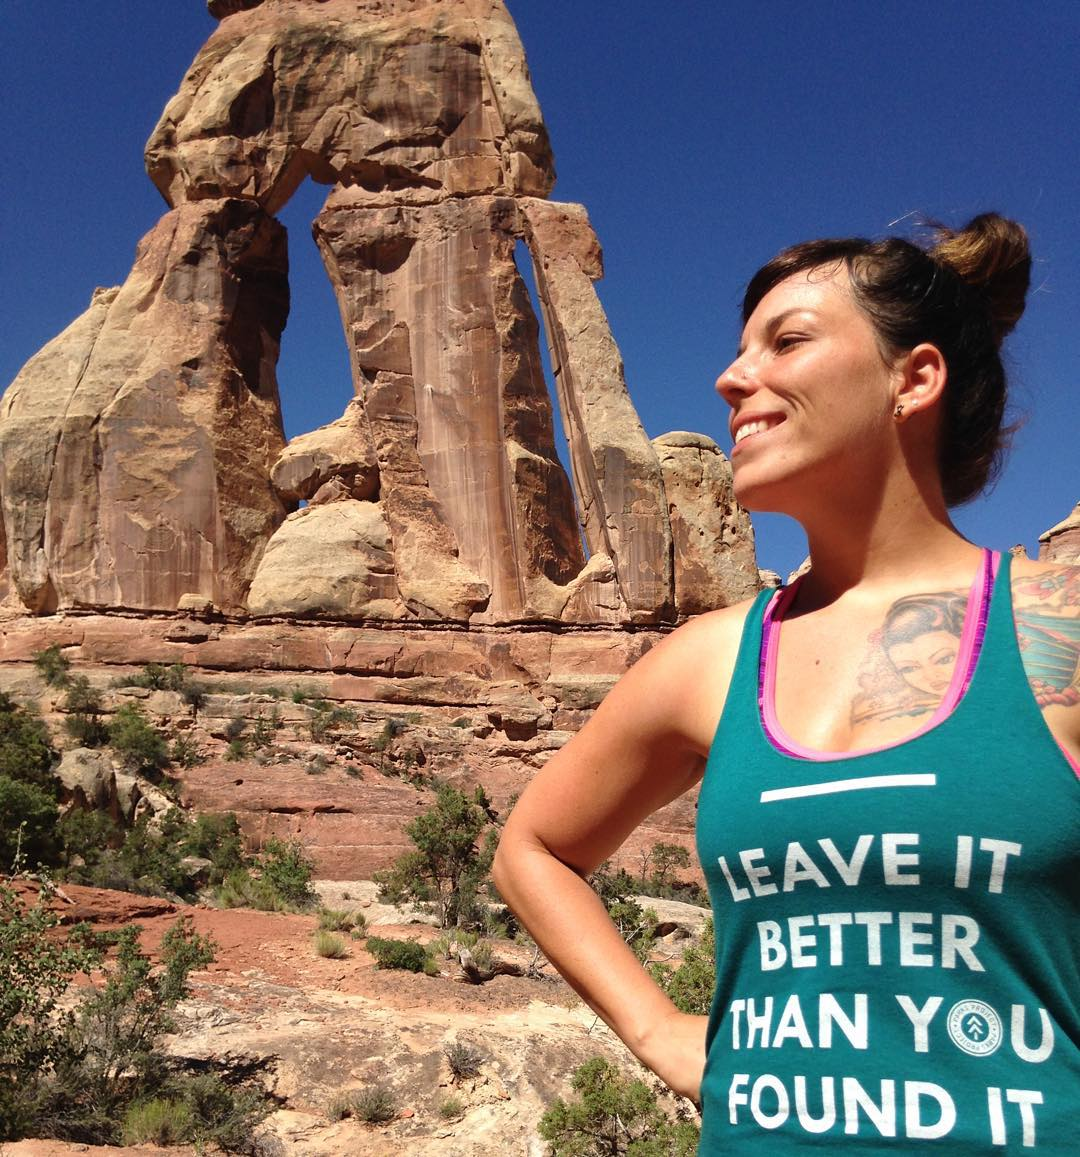 H A P P Y  F R I D A Y Our friend @sunshineinmotion just shared a photo from a hike in #canyonlands more in her blog too :) #leaveitbetterthanyoufoundit #radparks  #nationalpubliclandsday #utahisrad #nationalparks #adventure #weekend